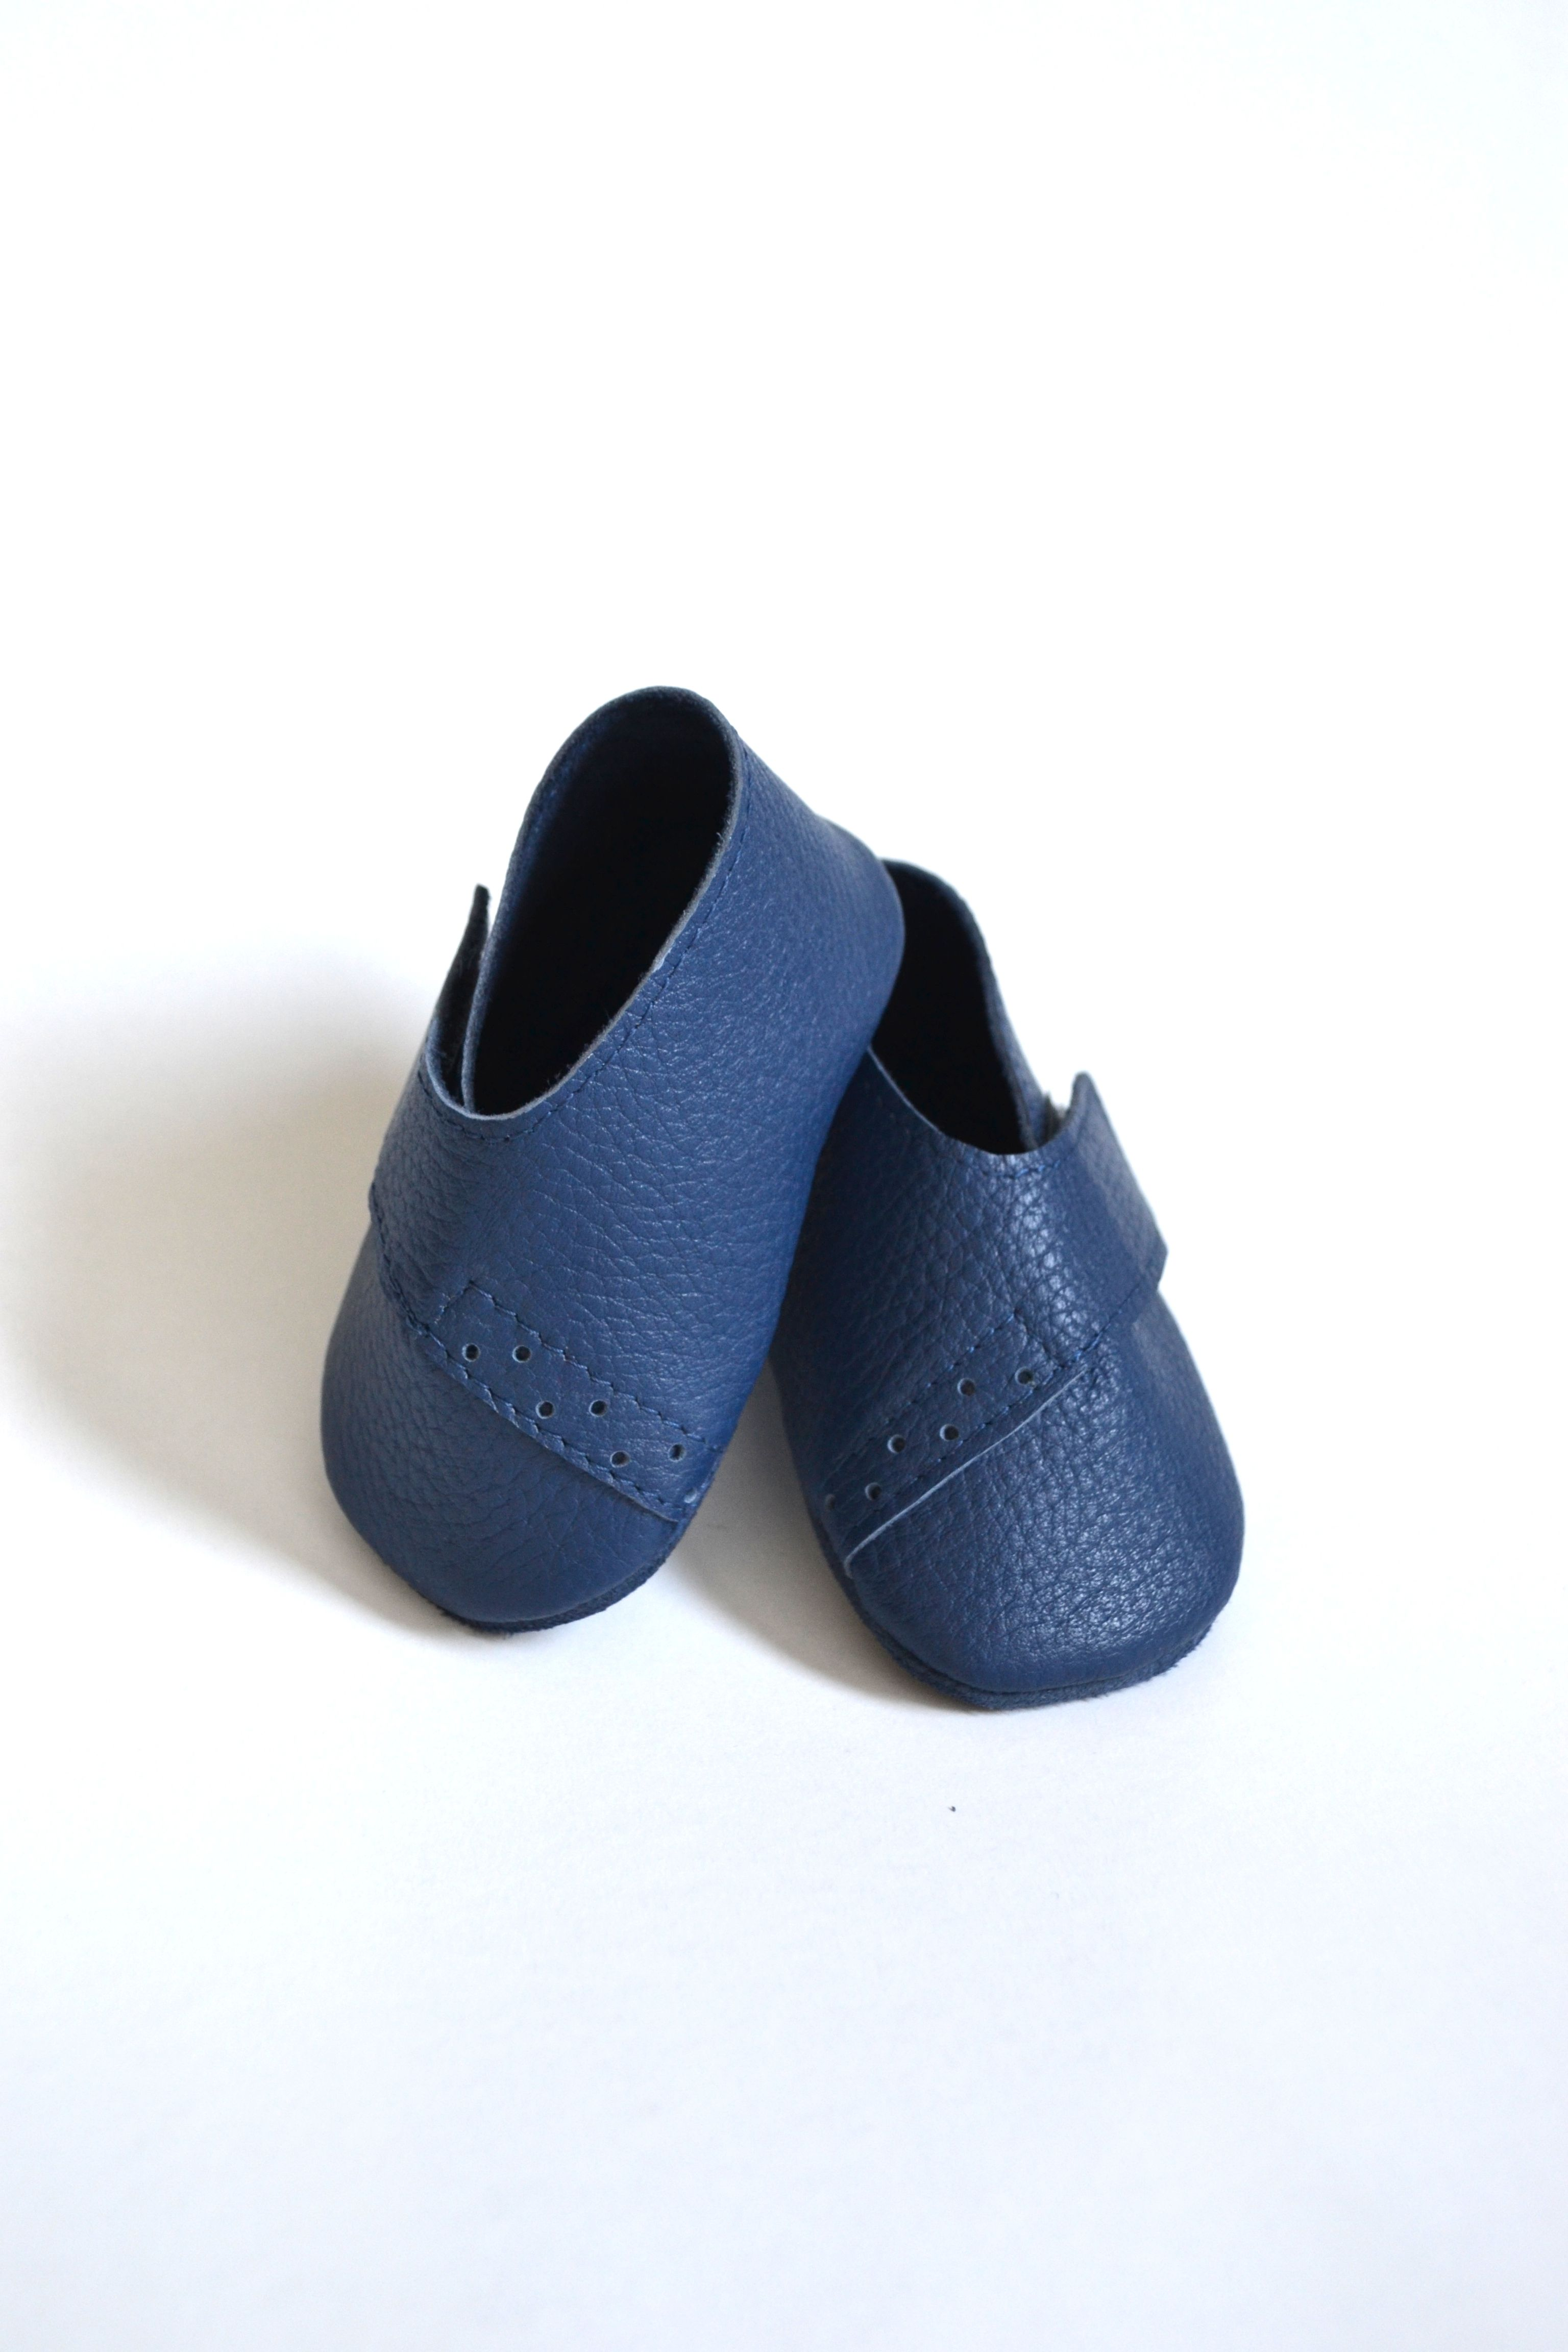 Handmade soft sole leather baby shoes in navy blue color by MiniMo